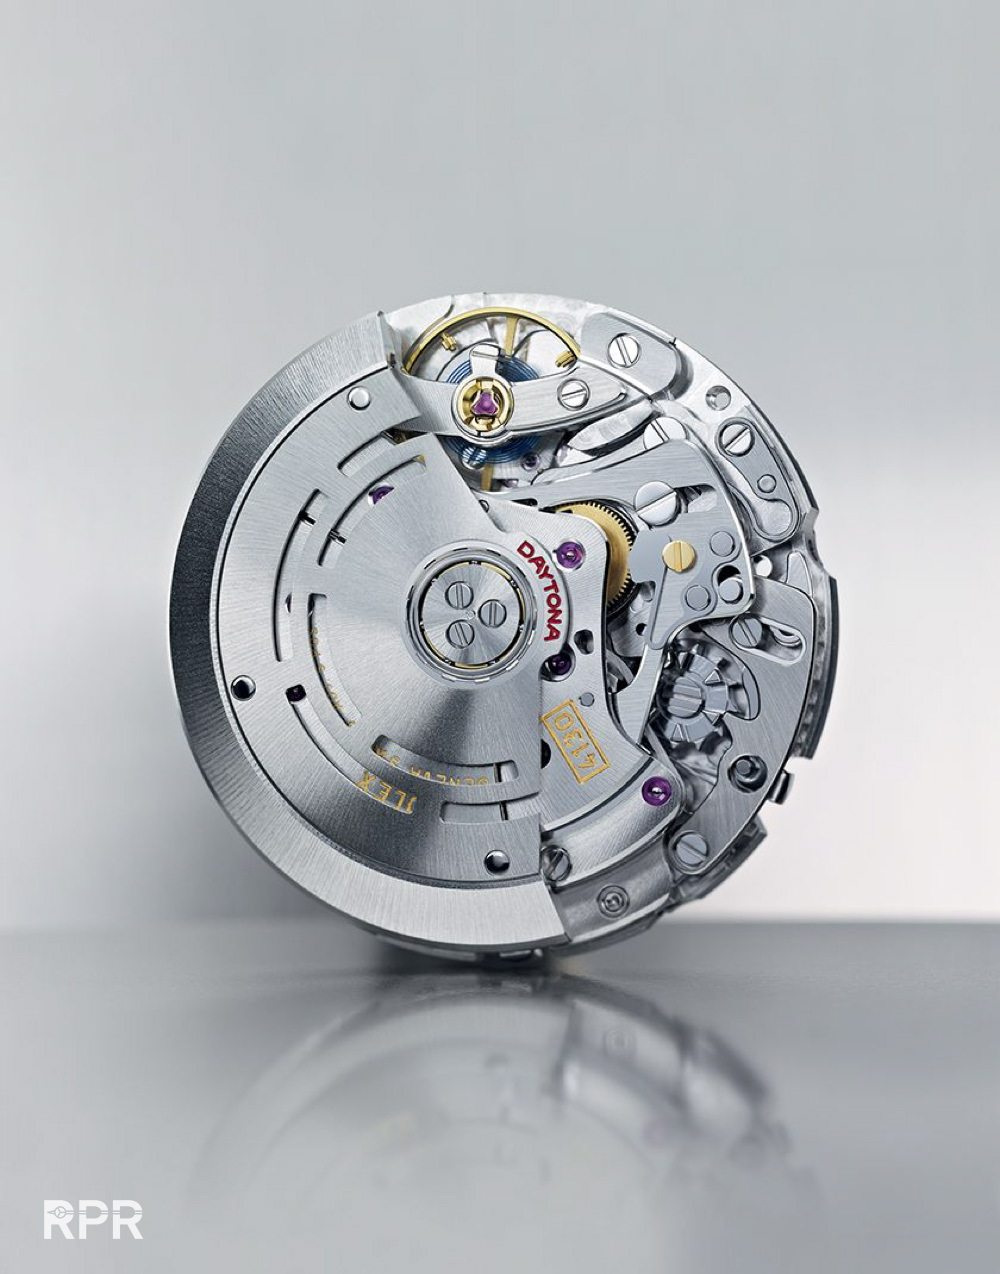 RPR_about_rolex_movement_4130_0001_840x1070